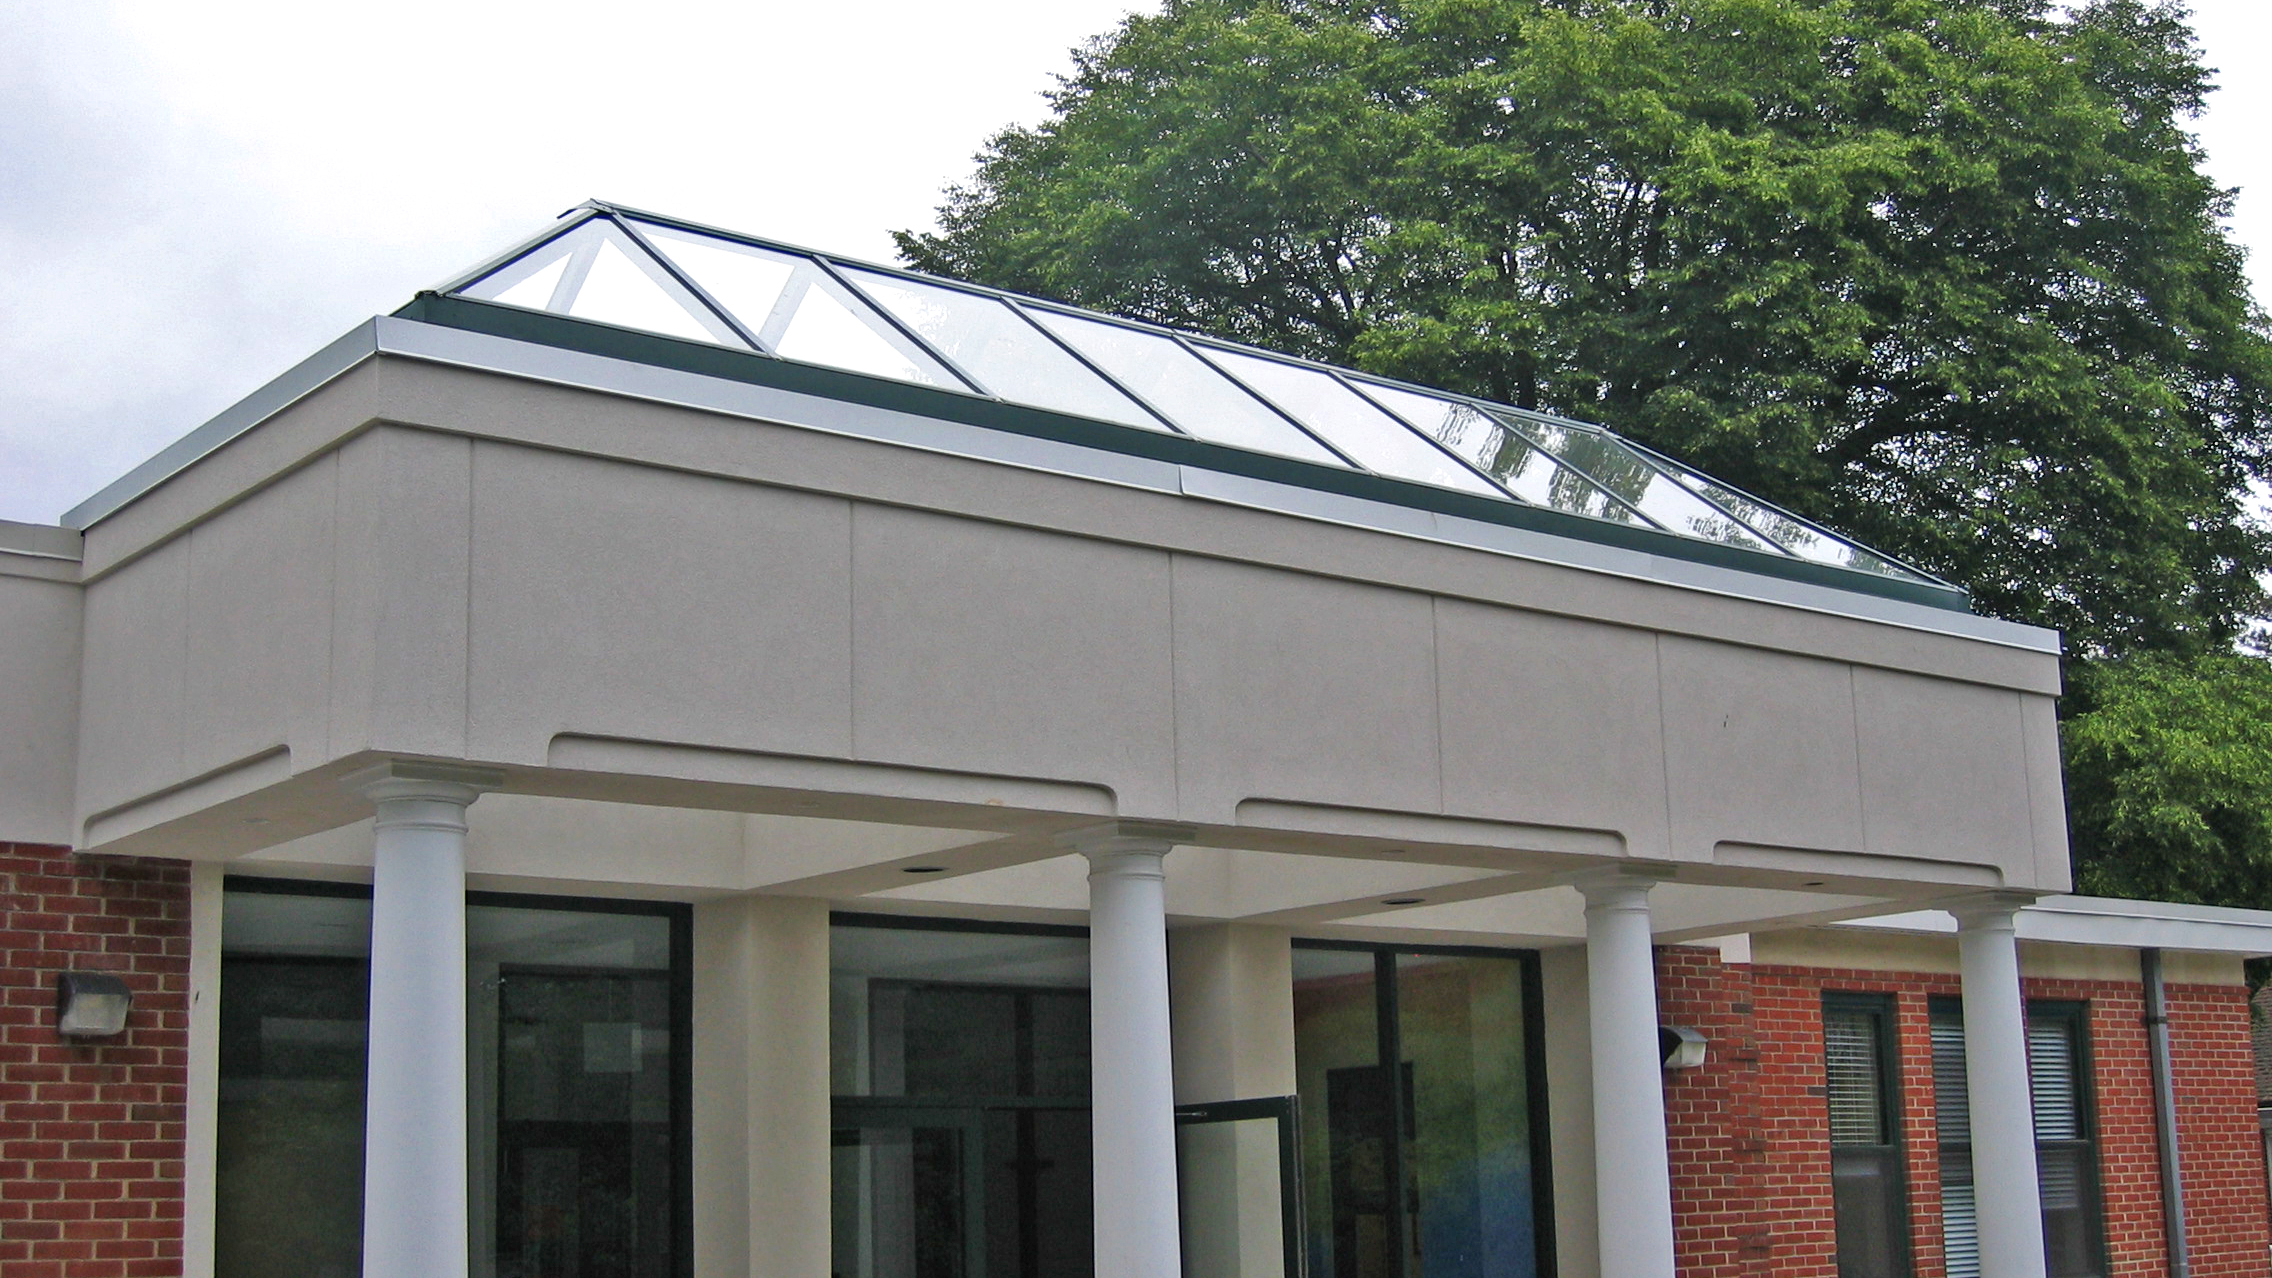 Straight eave double pitch skylight canopy.